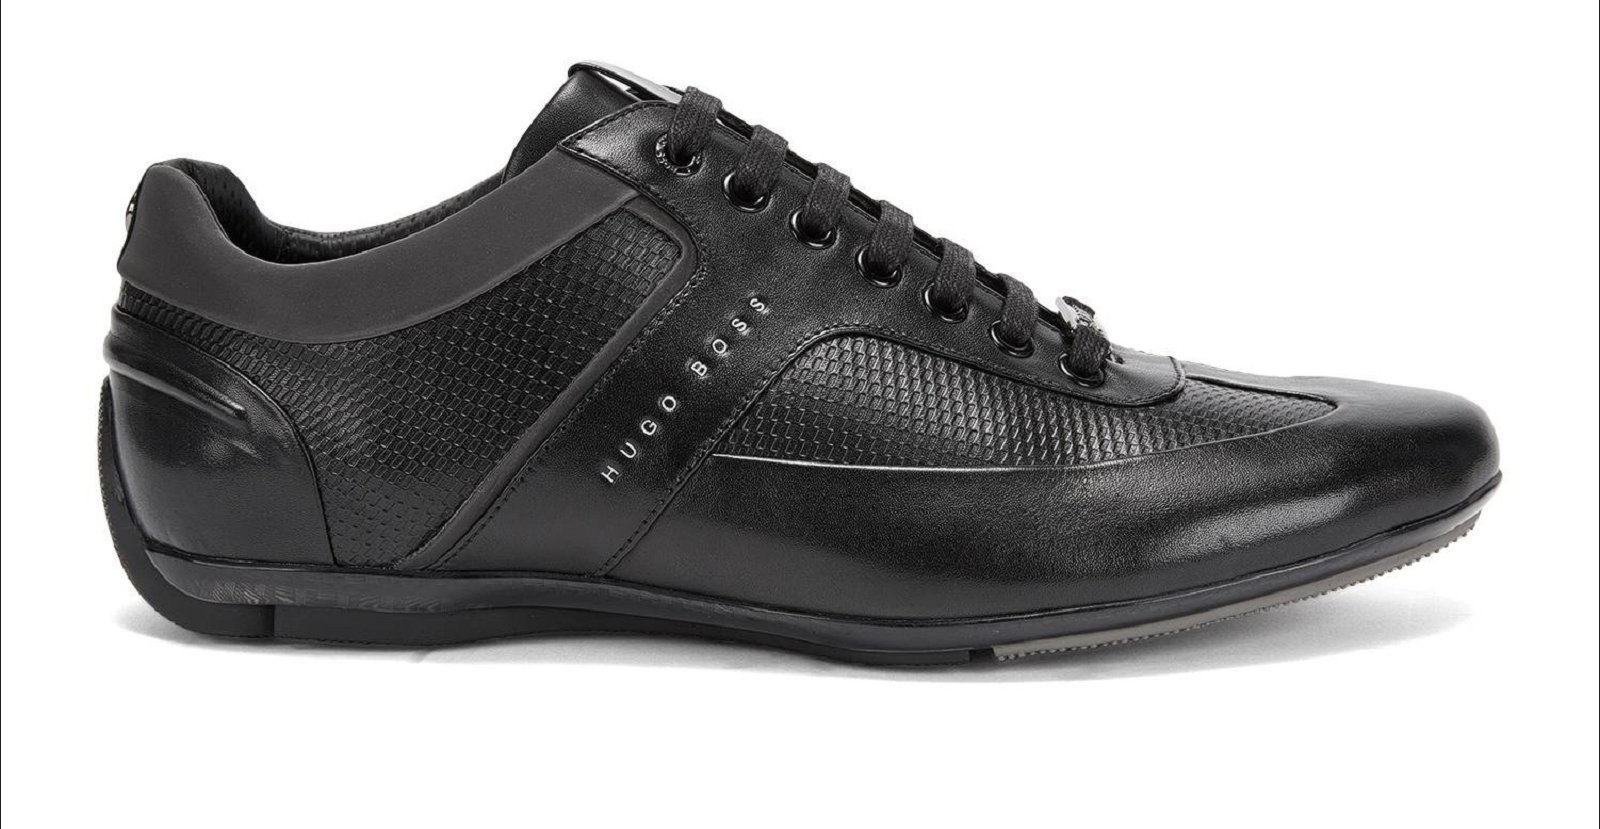 Chaussures Pour Homme Uwjxryxz-111159-3255275 Delaying Senility Collection Hugo Boss Baskets En Cuir Sporty Lowp 50330559